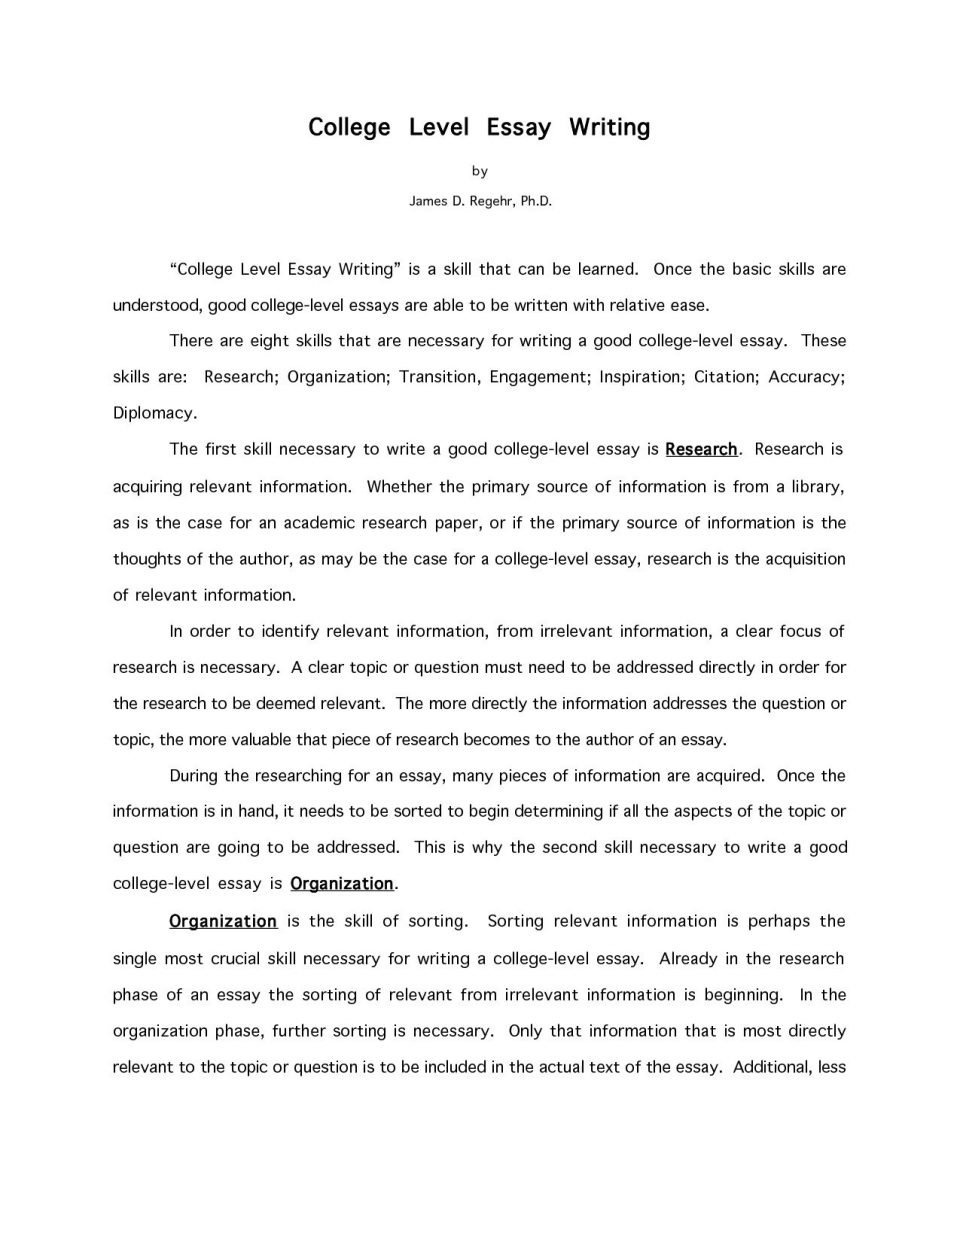 020 Research Paper Good Topic College Essay Introduction Examples World Issues To Write About For Essays Example Of Durun Ugrasgrup Throu Topics Interesting Singular Best Ideas History High School Students In The Philippines Full